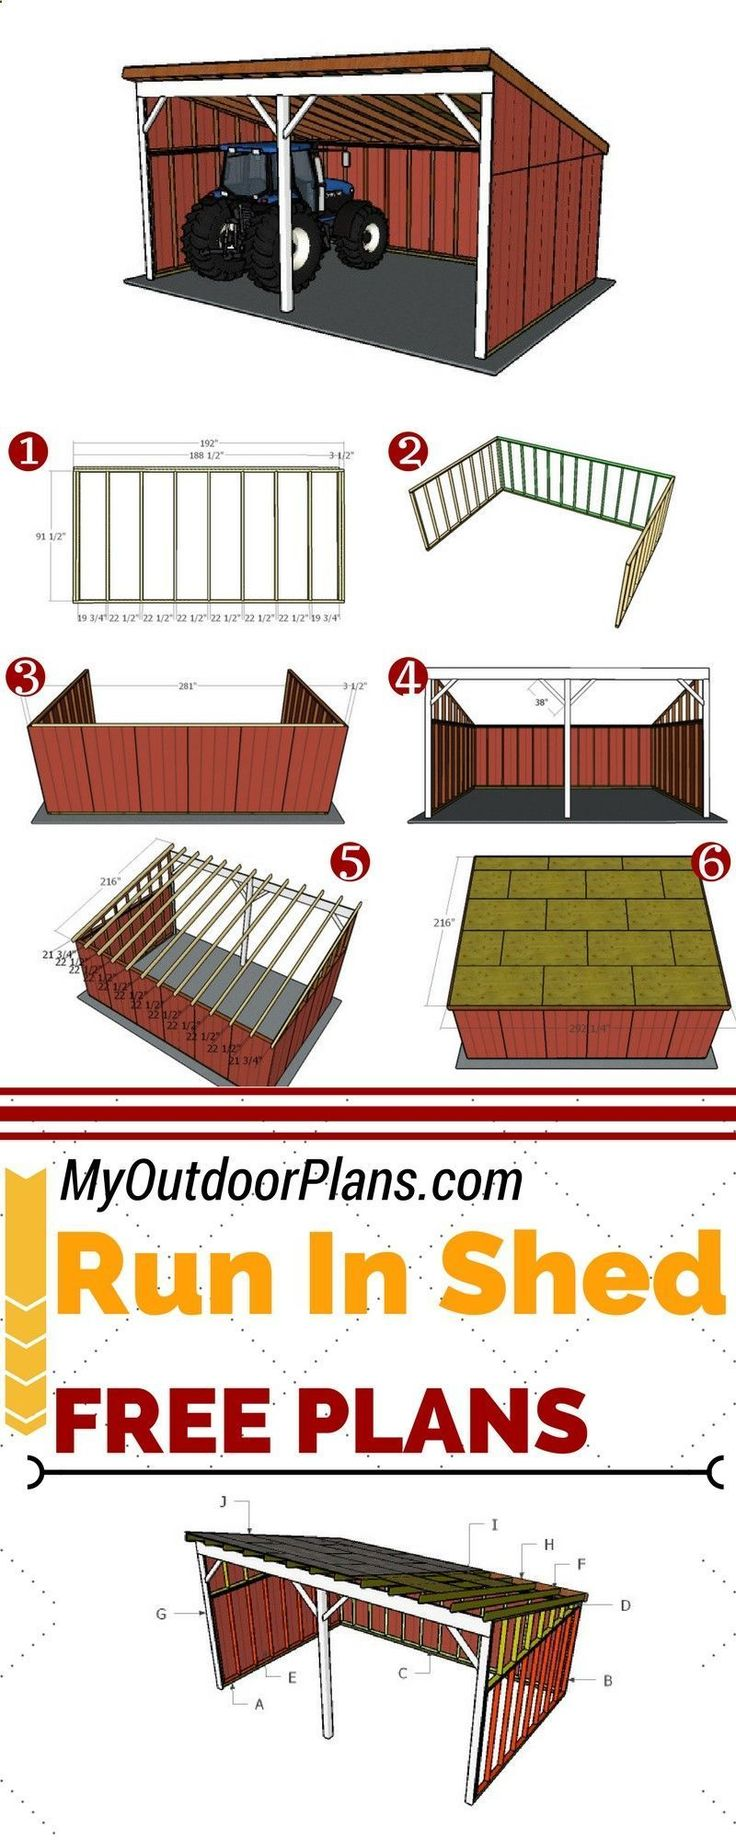 Plans of Woodworking Diy Projects - Free plans for building a 16x24 run in shed. This leafing shed is ideal for storing tools, ATVs and even tractors. Full plans at MyOutdoorPlans.com #diy #shed Get A Lifetime Of Project Ideas & Inspiration! #woodworkingideas